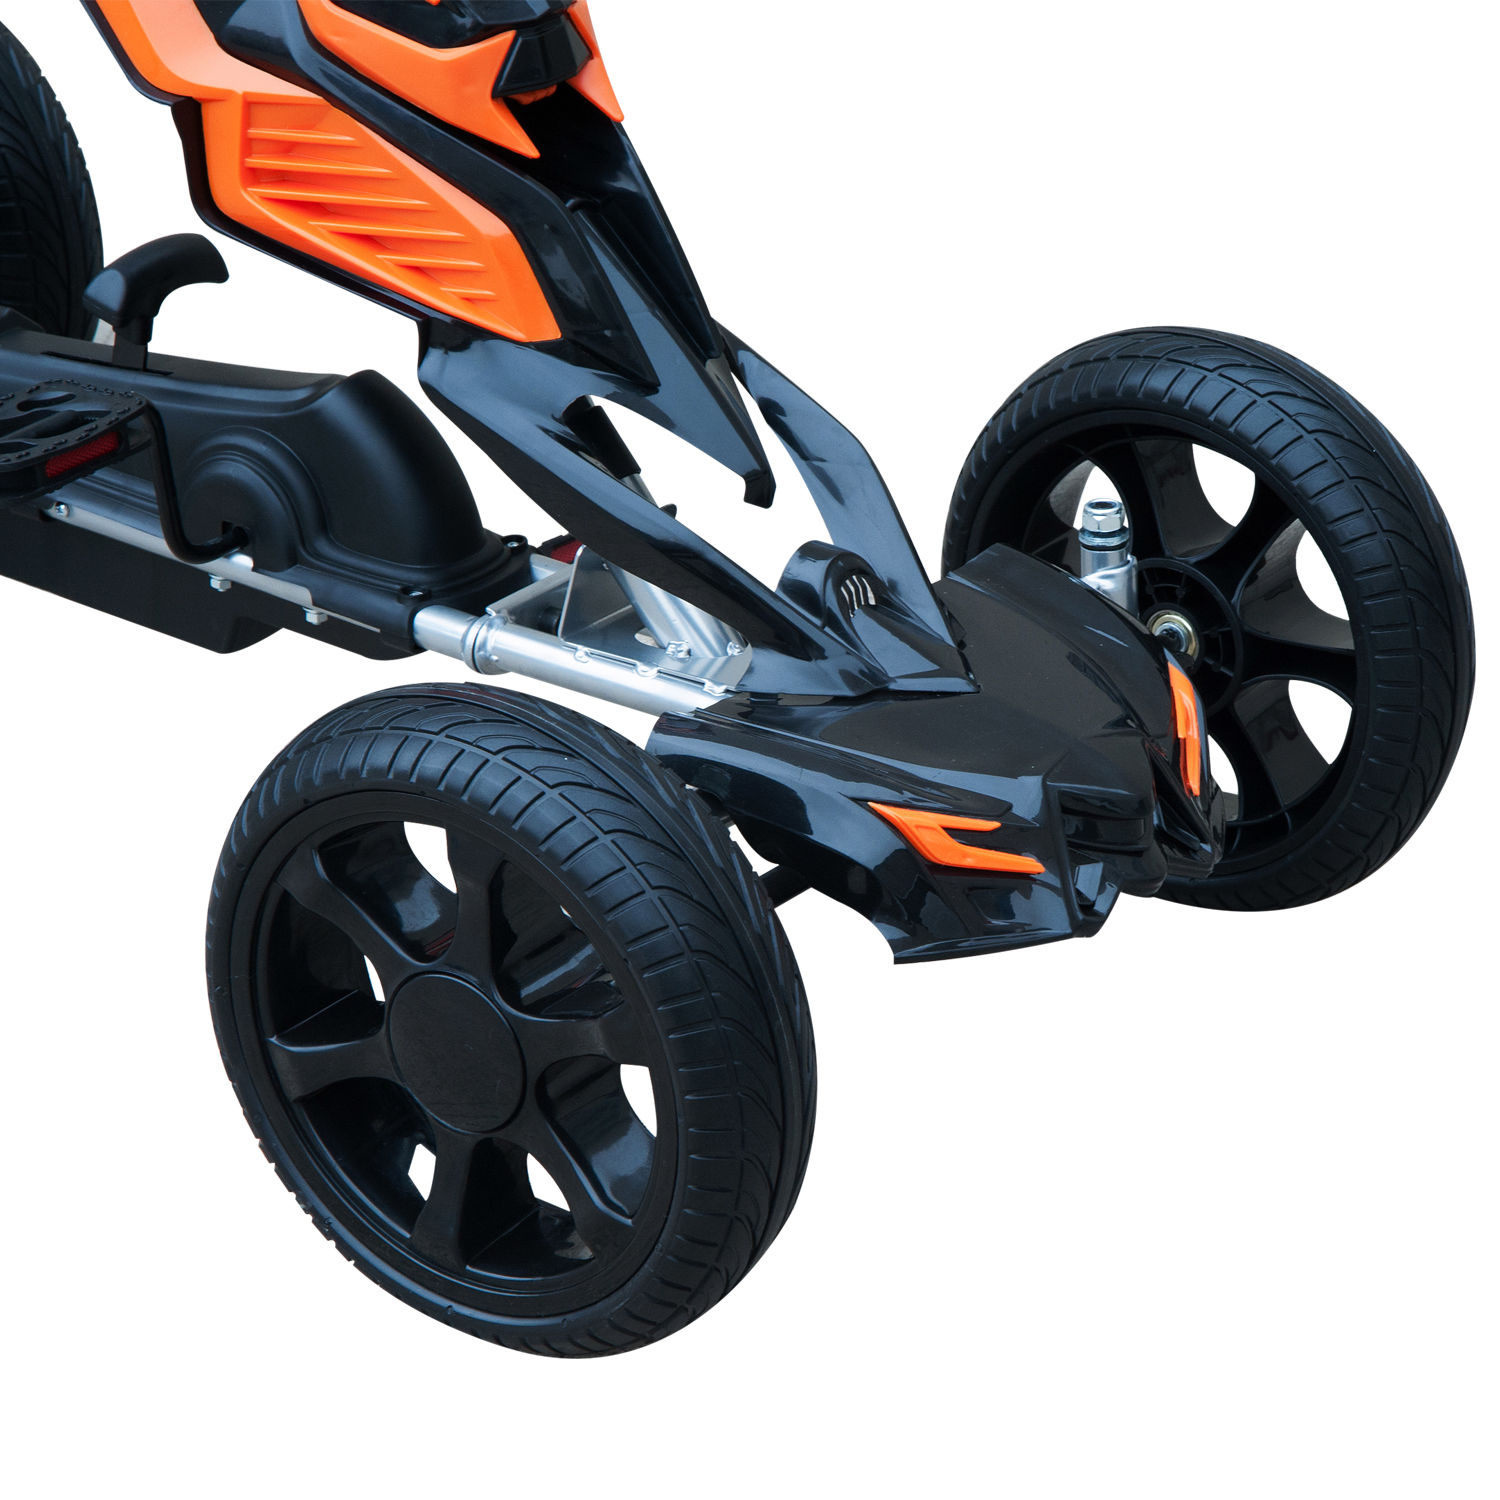 Kids-Pedal-Go-Cart-Children-Outdoor-Ride-on-Car-Racing-Toy-Wheels-4-Choices